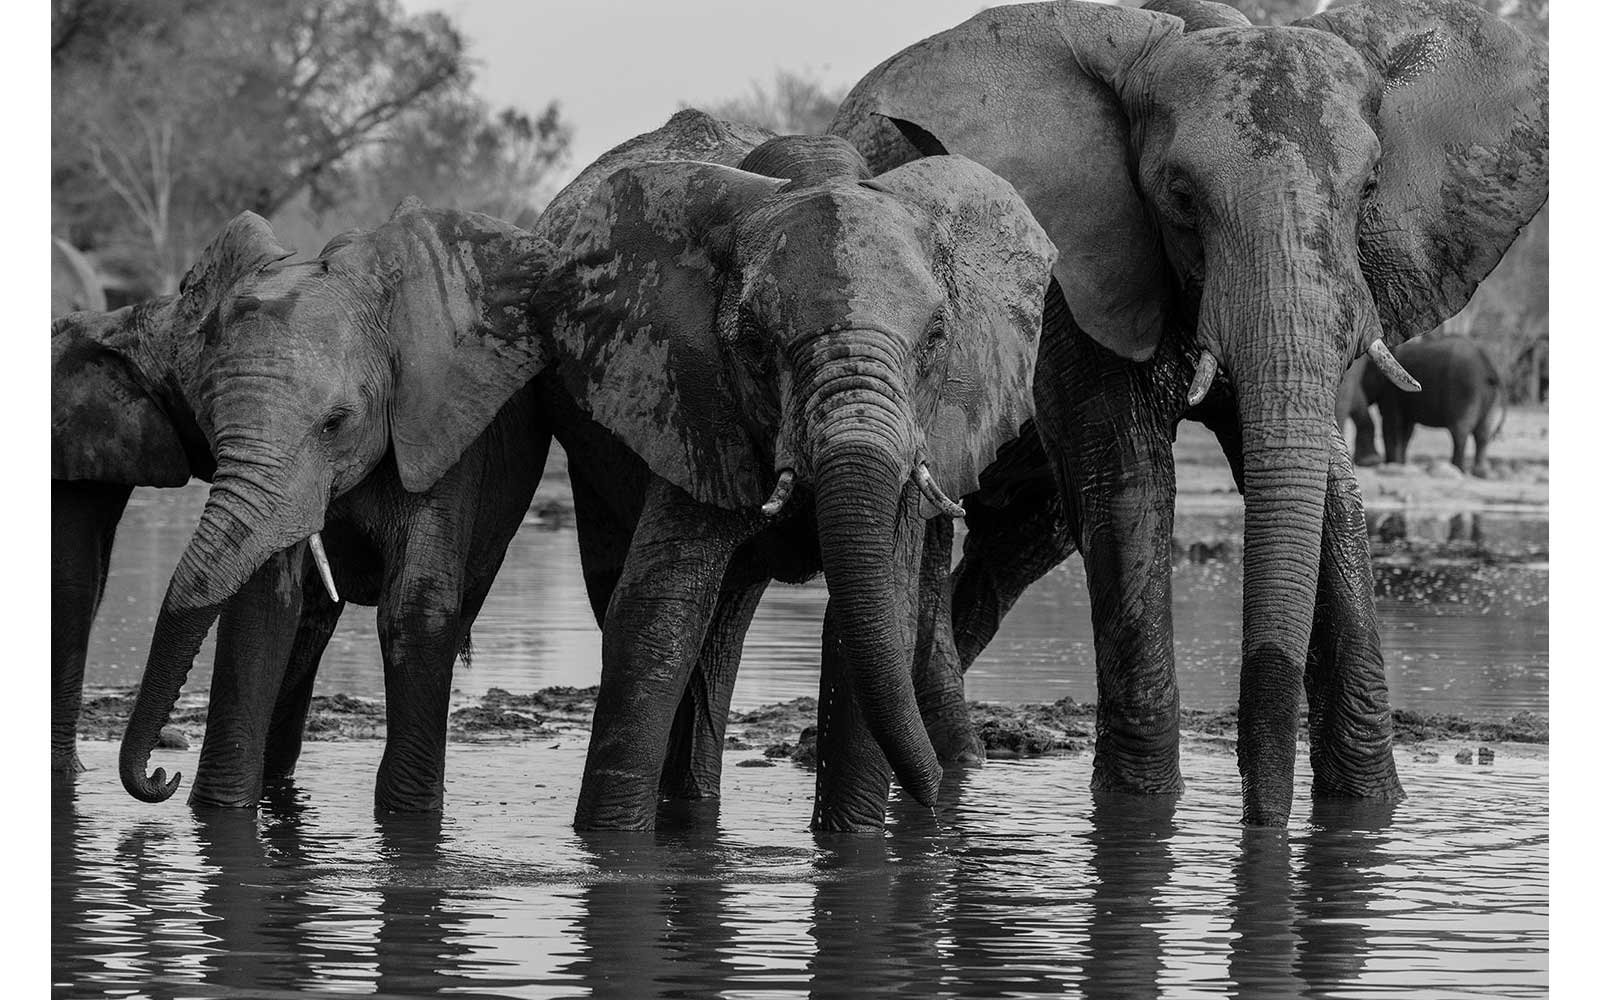 Elephants in Zimbabwe